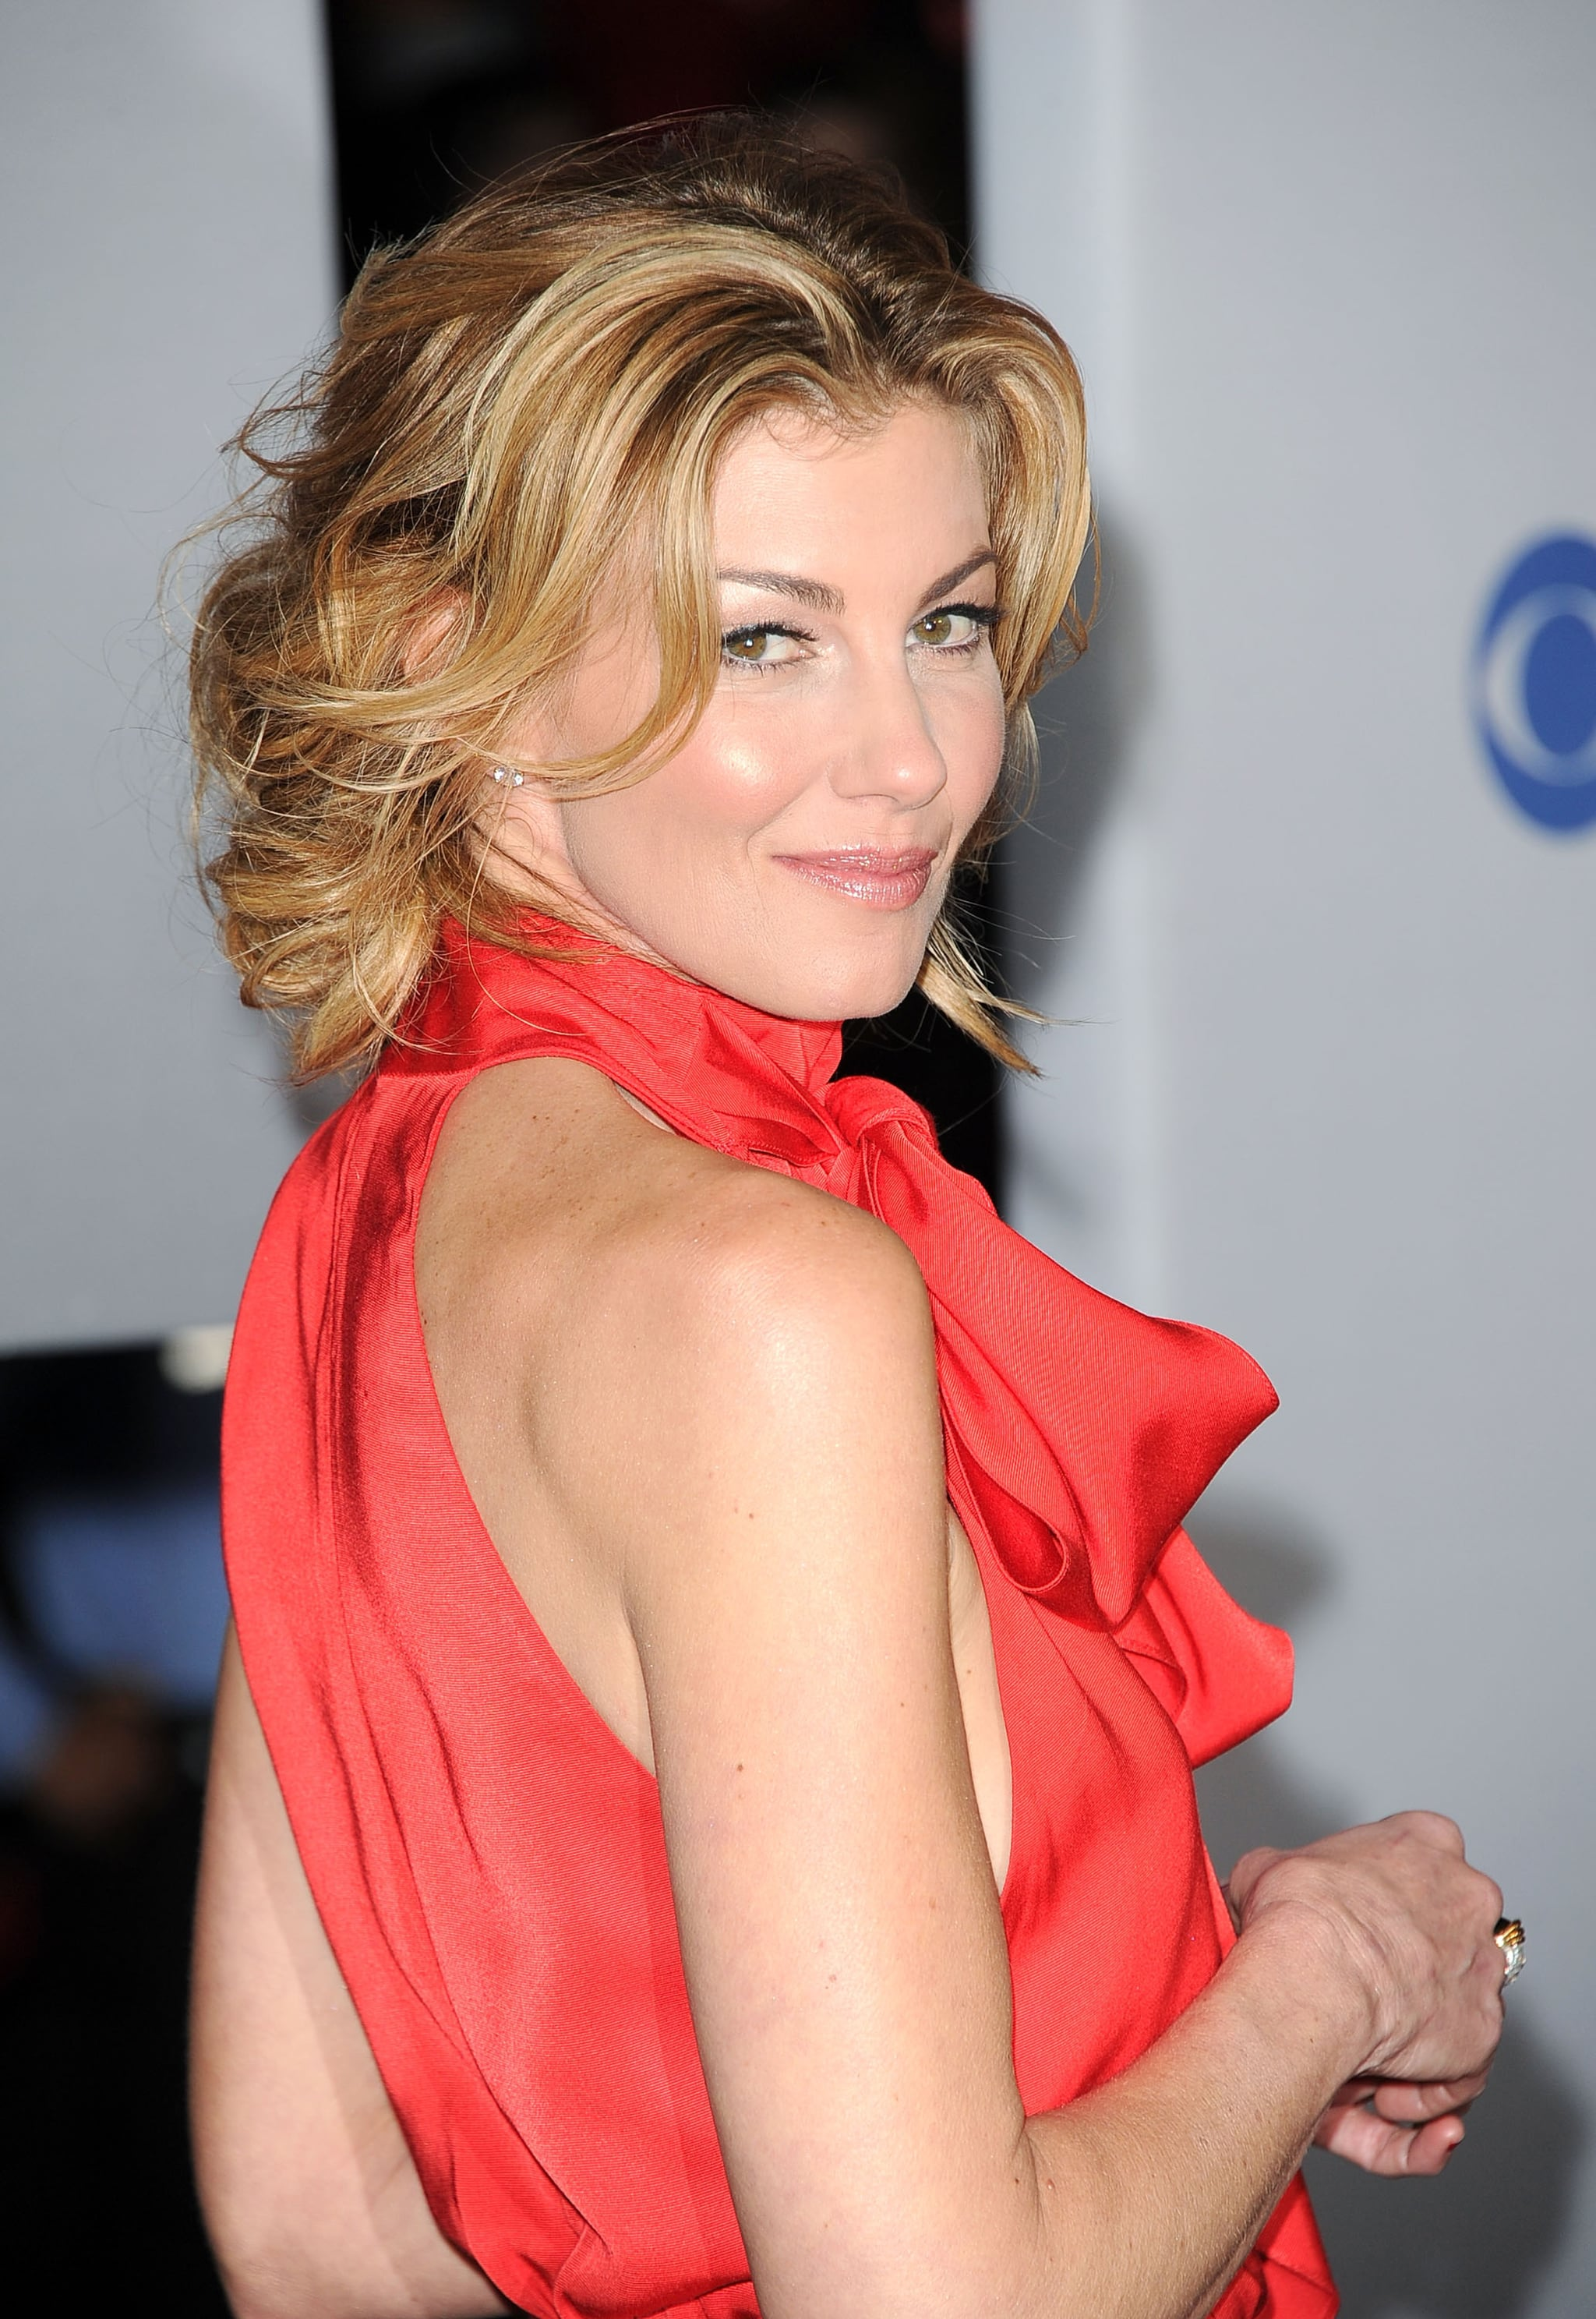 Faith Hill gave a back glance before heading into the People's Choice Awards.